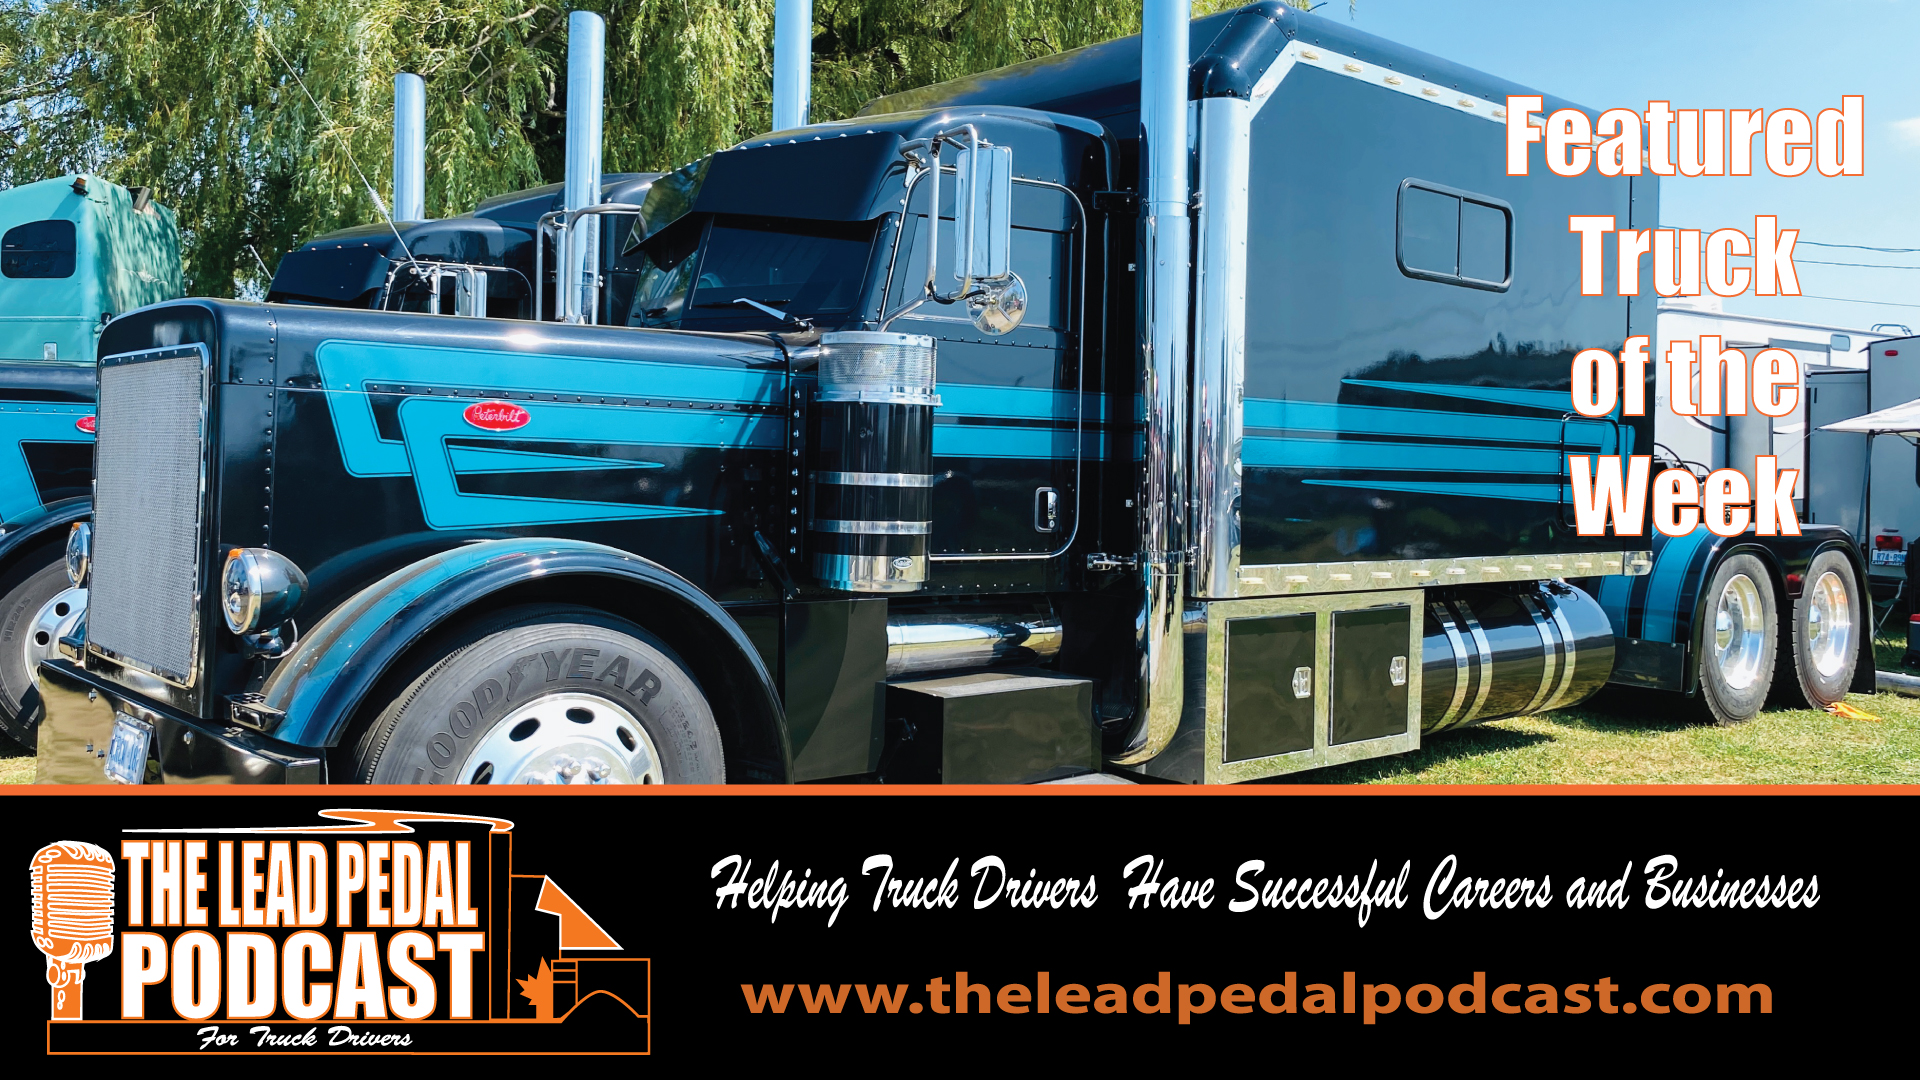 LP600 Featured Truck - Eagleson Show Truck